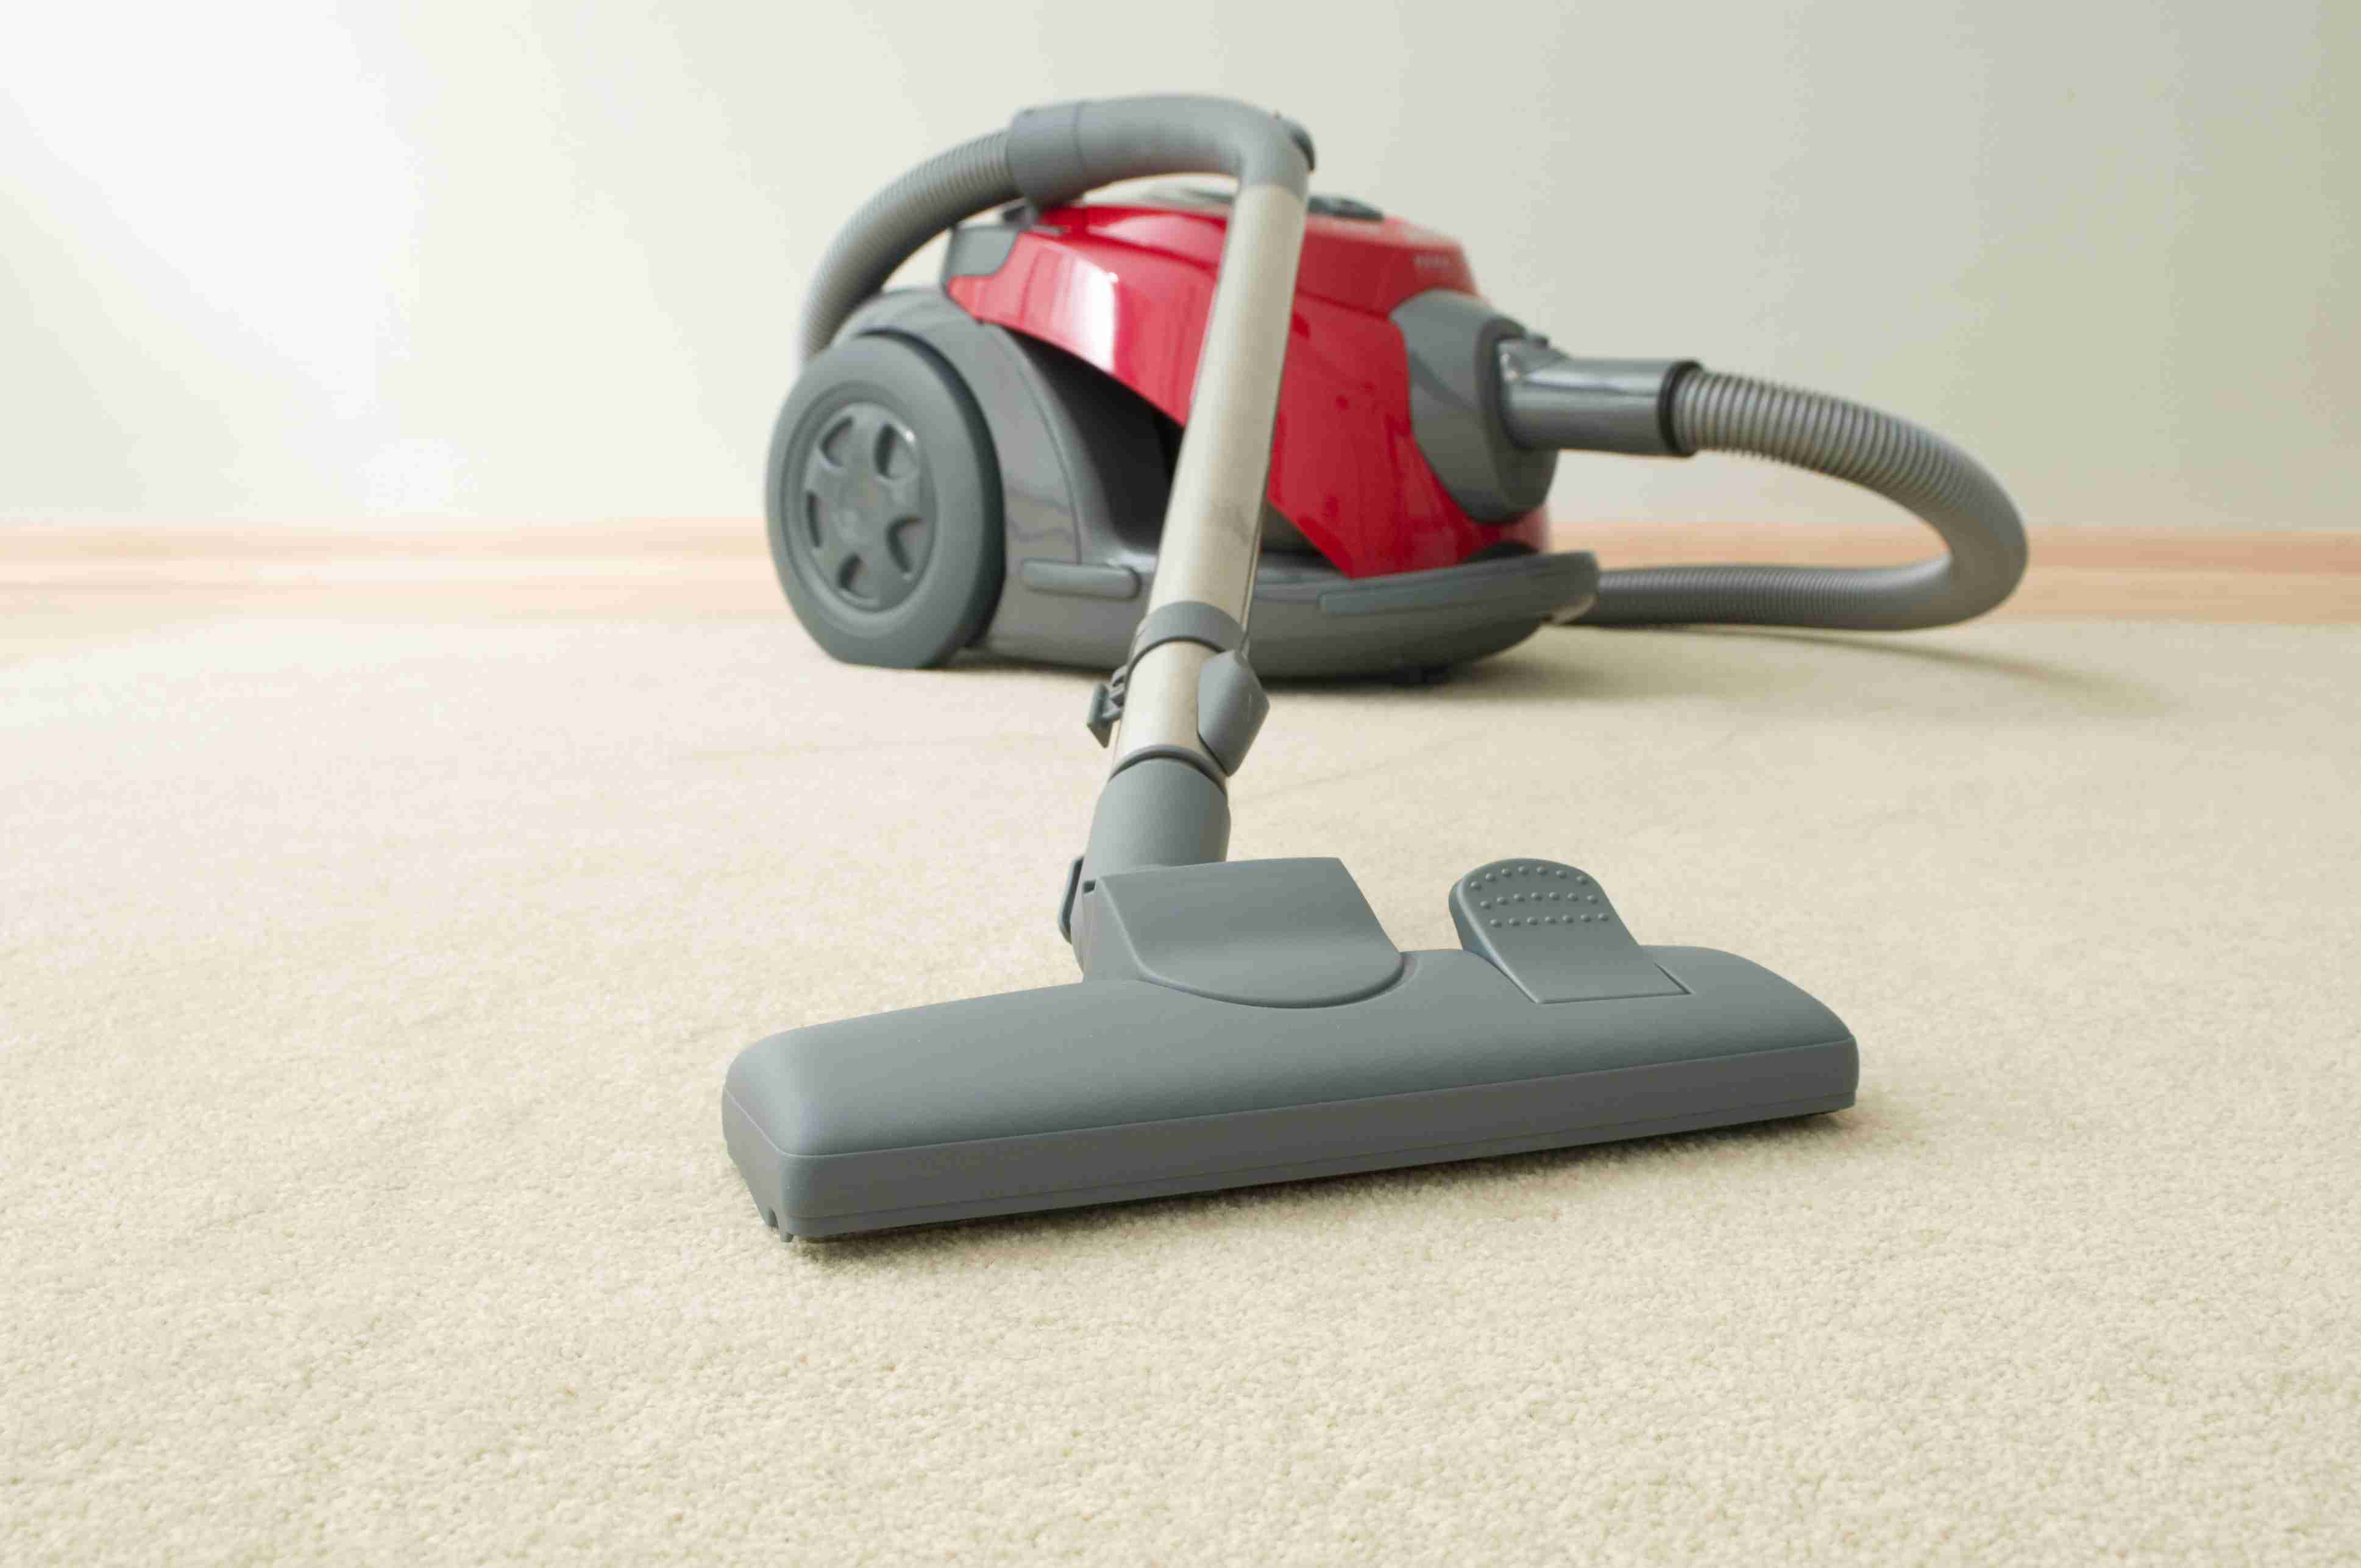 they best independent house reviews garden indybest do lifestyle cleaners work robot the uk extras vacuum floor